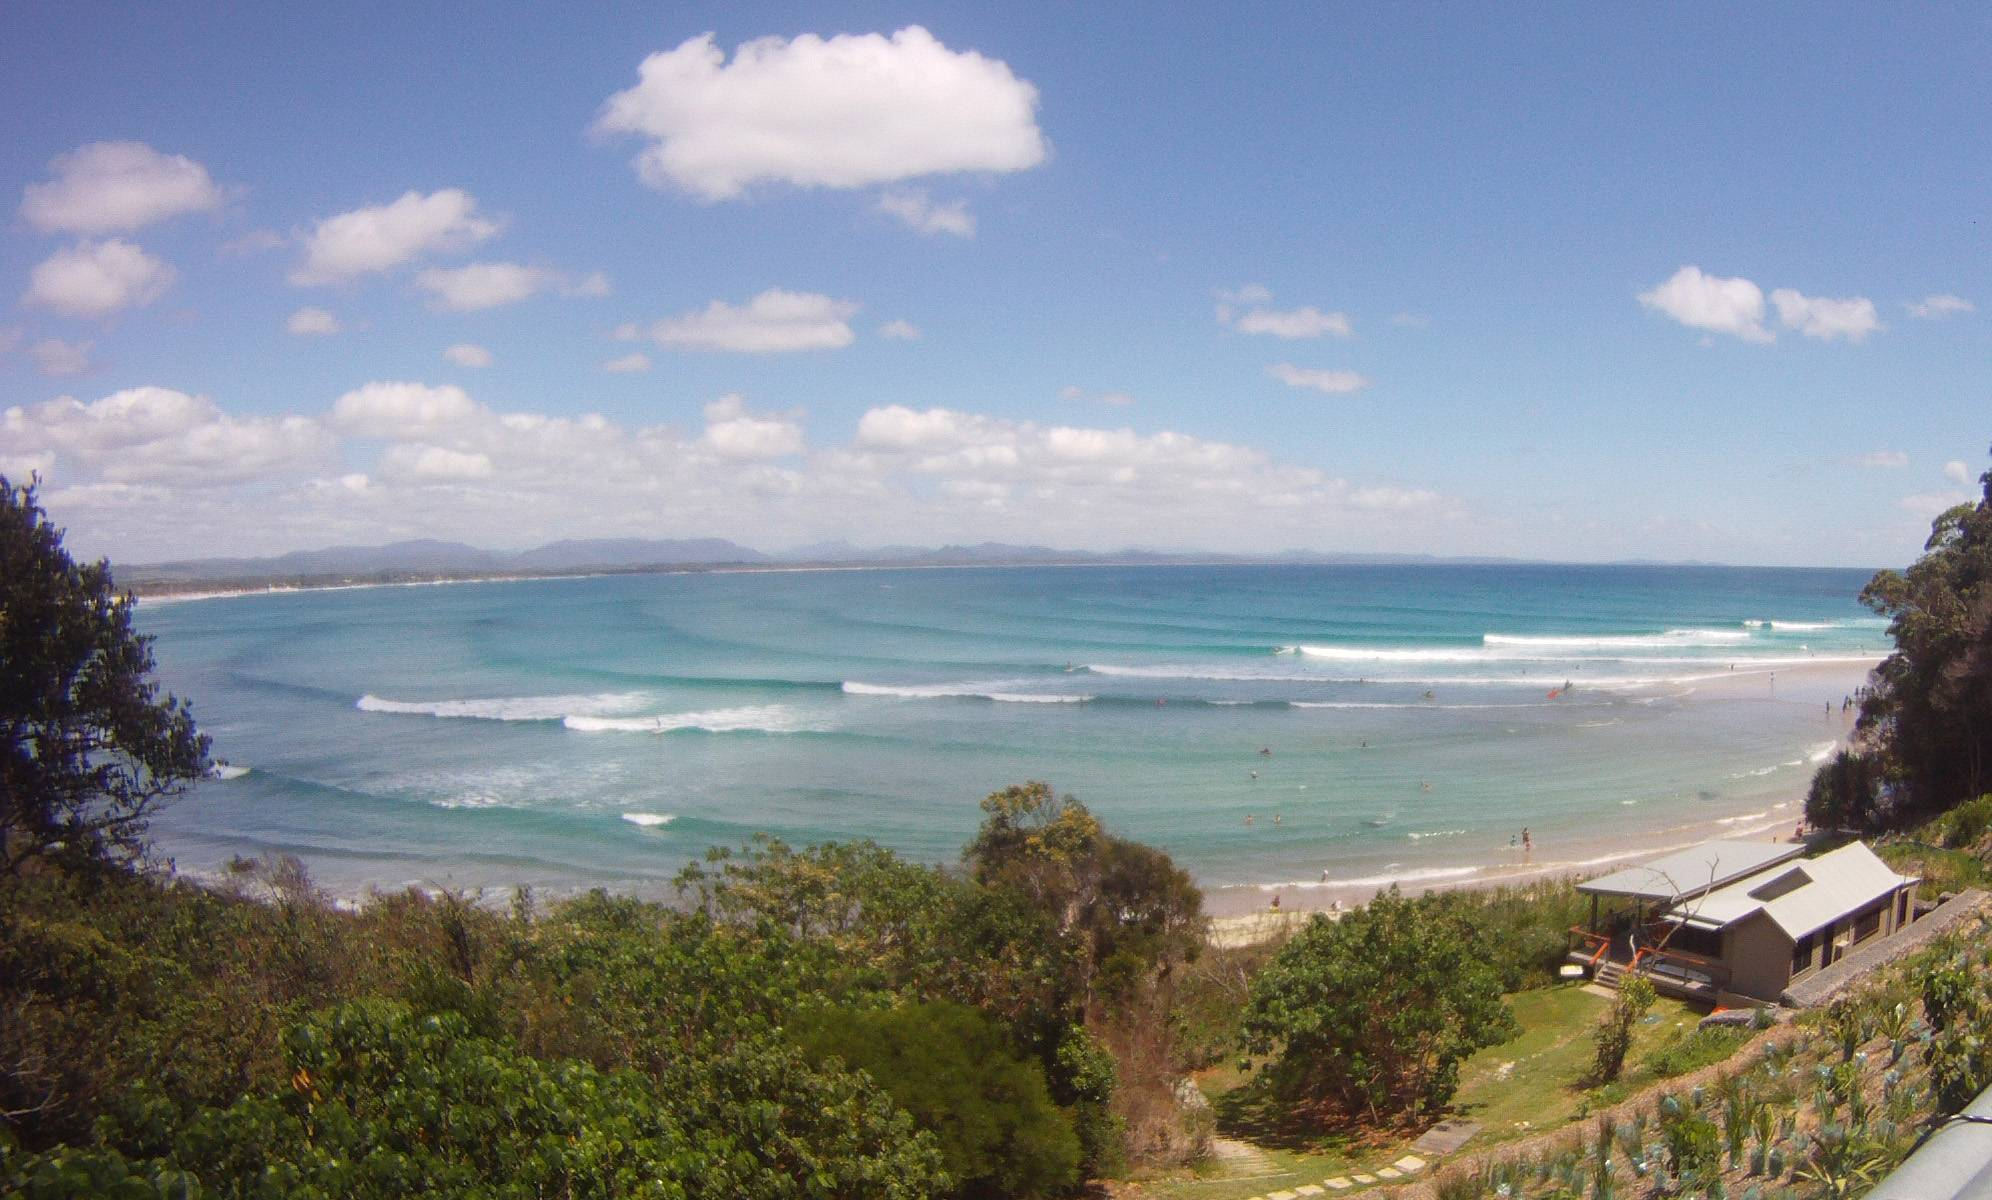 Photo 1: Byron Bay - relax & surf